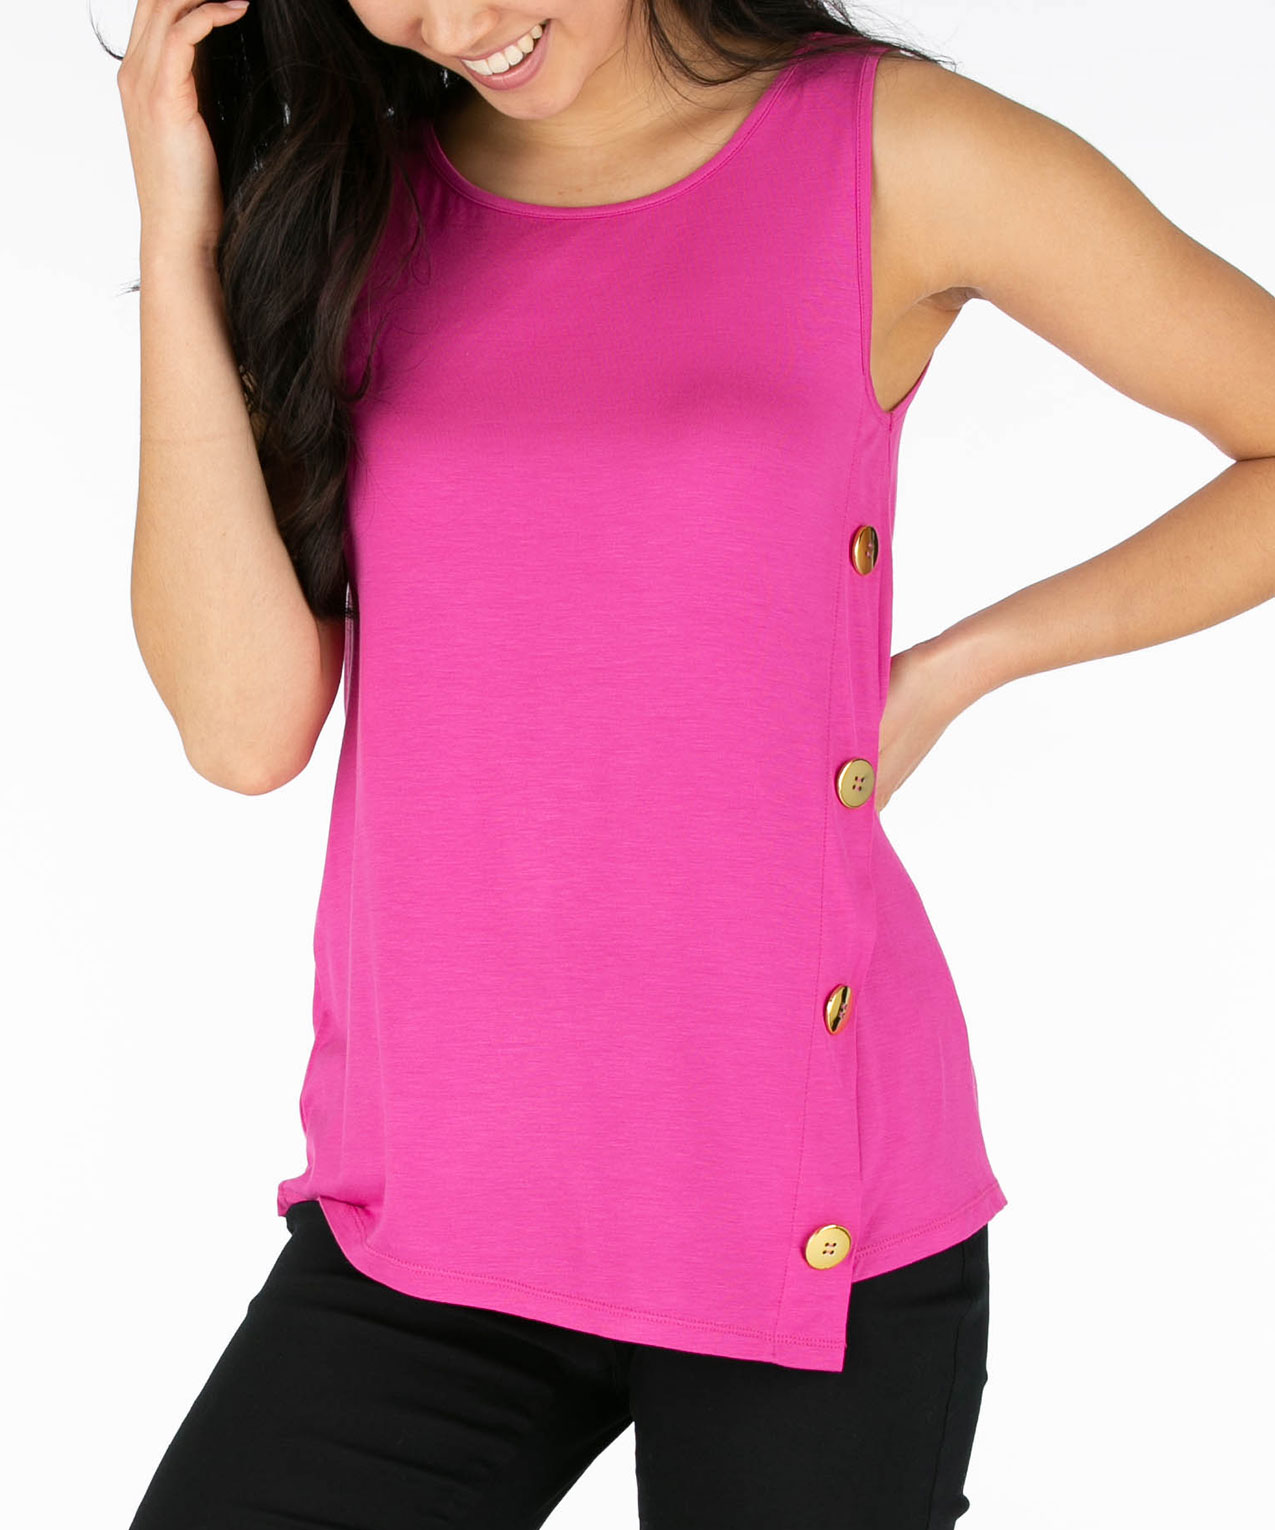 Sleeveless Asymmetrical Button-Trim Top, Hot Pink, hi-res